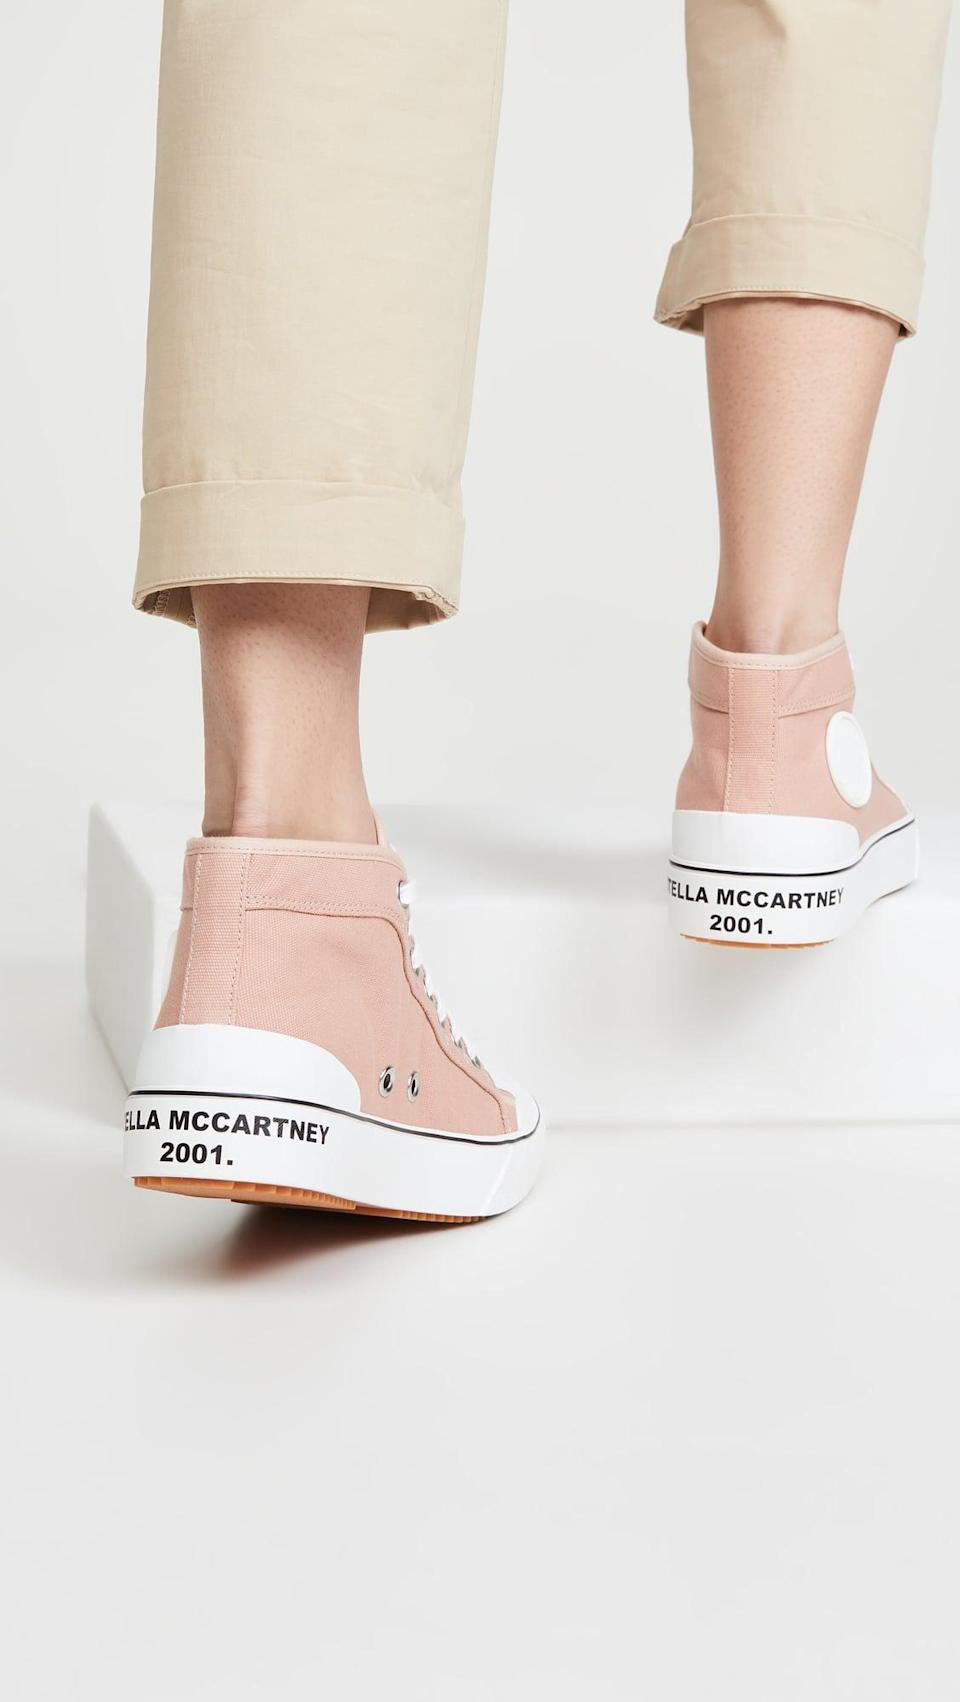 "<p><a href=""https://www.popsugar.com/buy/Stella-McCartney-Fabric-Sneakers-584514?p_name=Stella%20McCartney%20Fabric%20Sneakers&retailer=shopbop.com&pid=584514&price=395&evar1=fab%3Aus&evar9=47571677&evar98=https%3A%2F%2Fwww.popsugar.com%2Ffashion%2Fphoto-gallery%2F47571677%2Fimage%2F47571943%2FStella-McCartney-Fabric-Sneakers&list1=shopping%2Cshoes%2Csneakers%2Csummer%2Csummer%20fashion%2Cfashion%20shopping&prop13=mobile&pdata=1"" rel=""nofollow noopener"" class=""link rapid-noclick-resp"" target=""_blank"" data-ylk=""slk:Stella McCartney Fabric Sneakers"">Stella McCartney Fabric Sneakers</a> ($395)</p>"